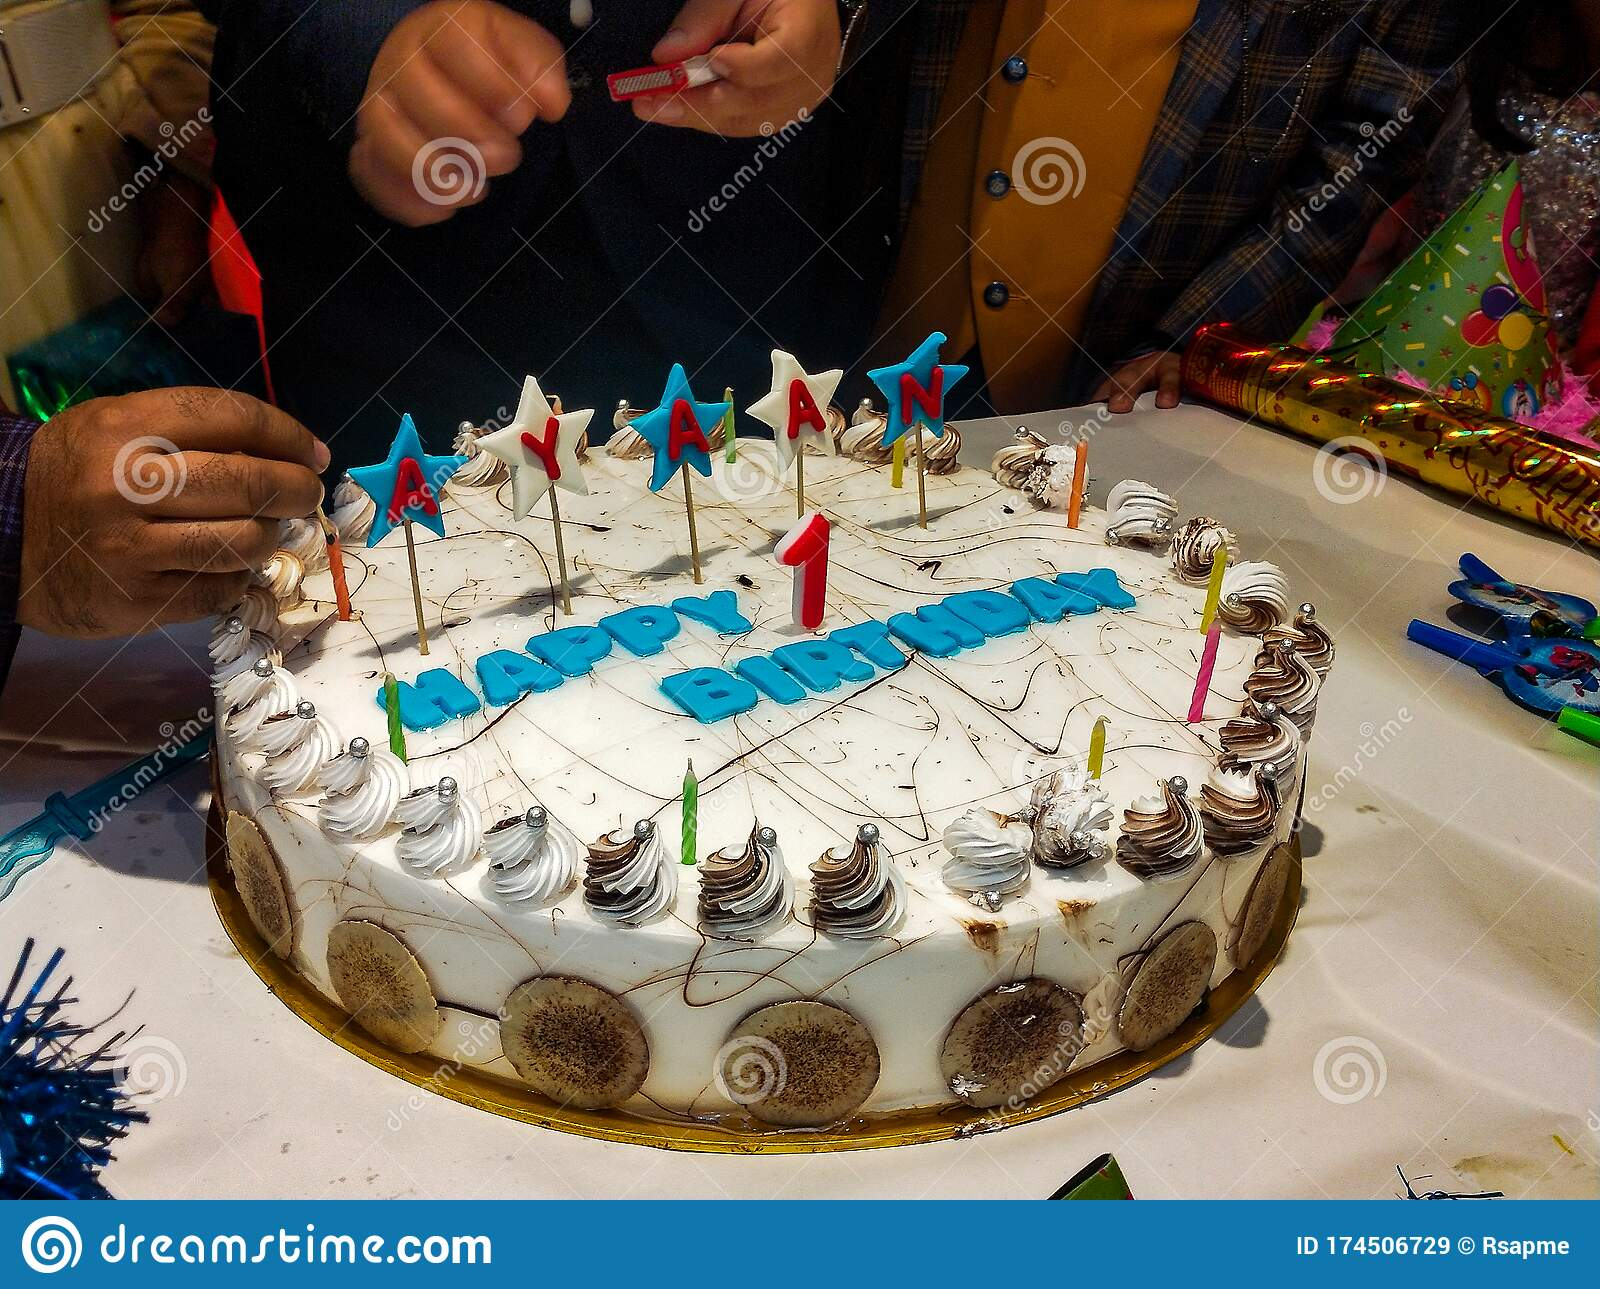 Big White Cake For Celebrating Baby Boy Happy Birthday With Awesome Decorations In Delhi India Birthday Party Of Baby Boy Stock Image Image Of Awesome Decorations 174506729